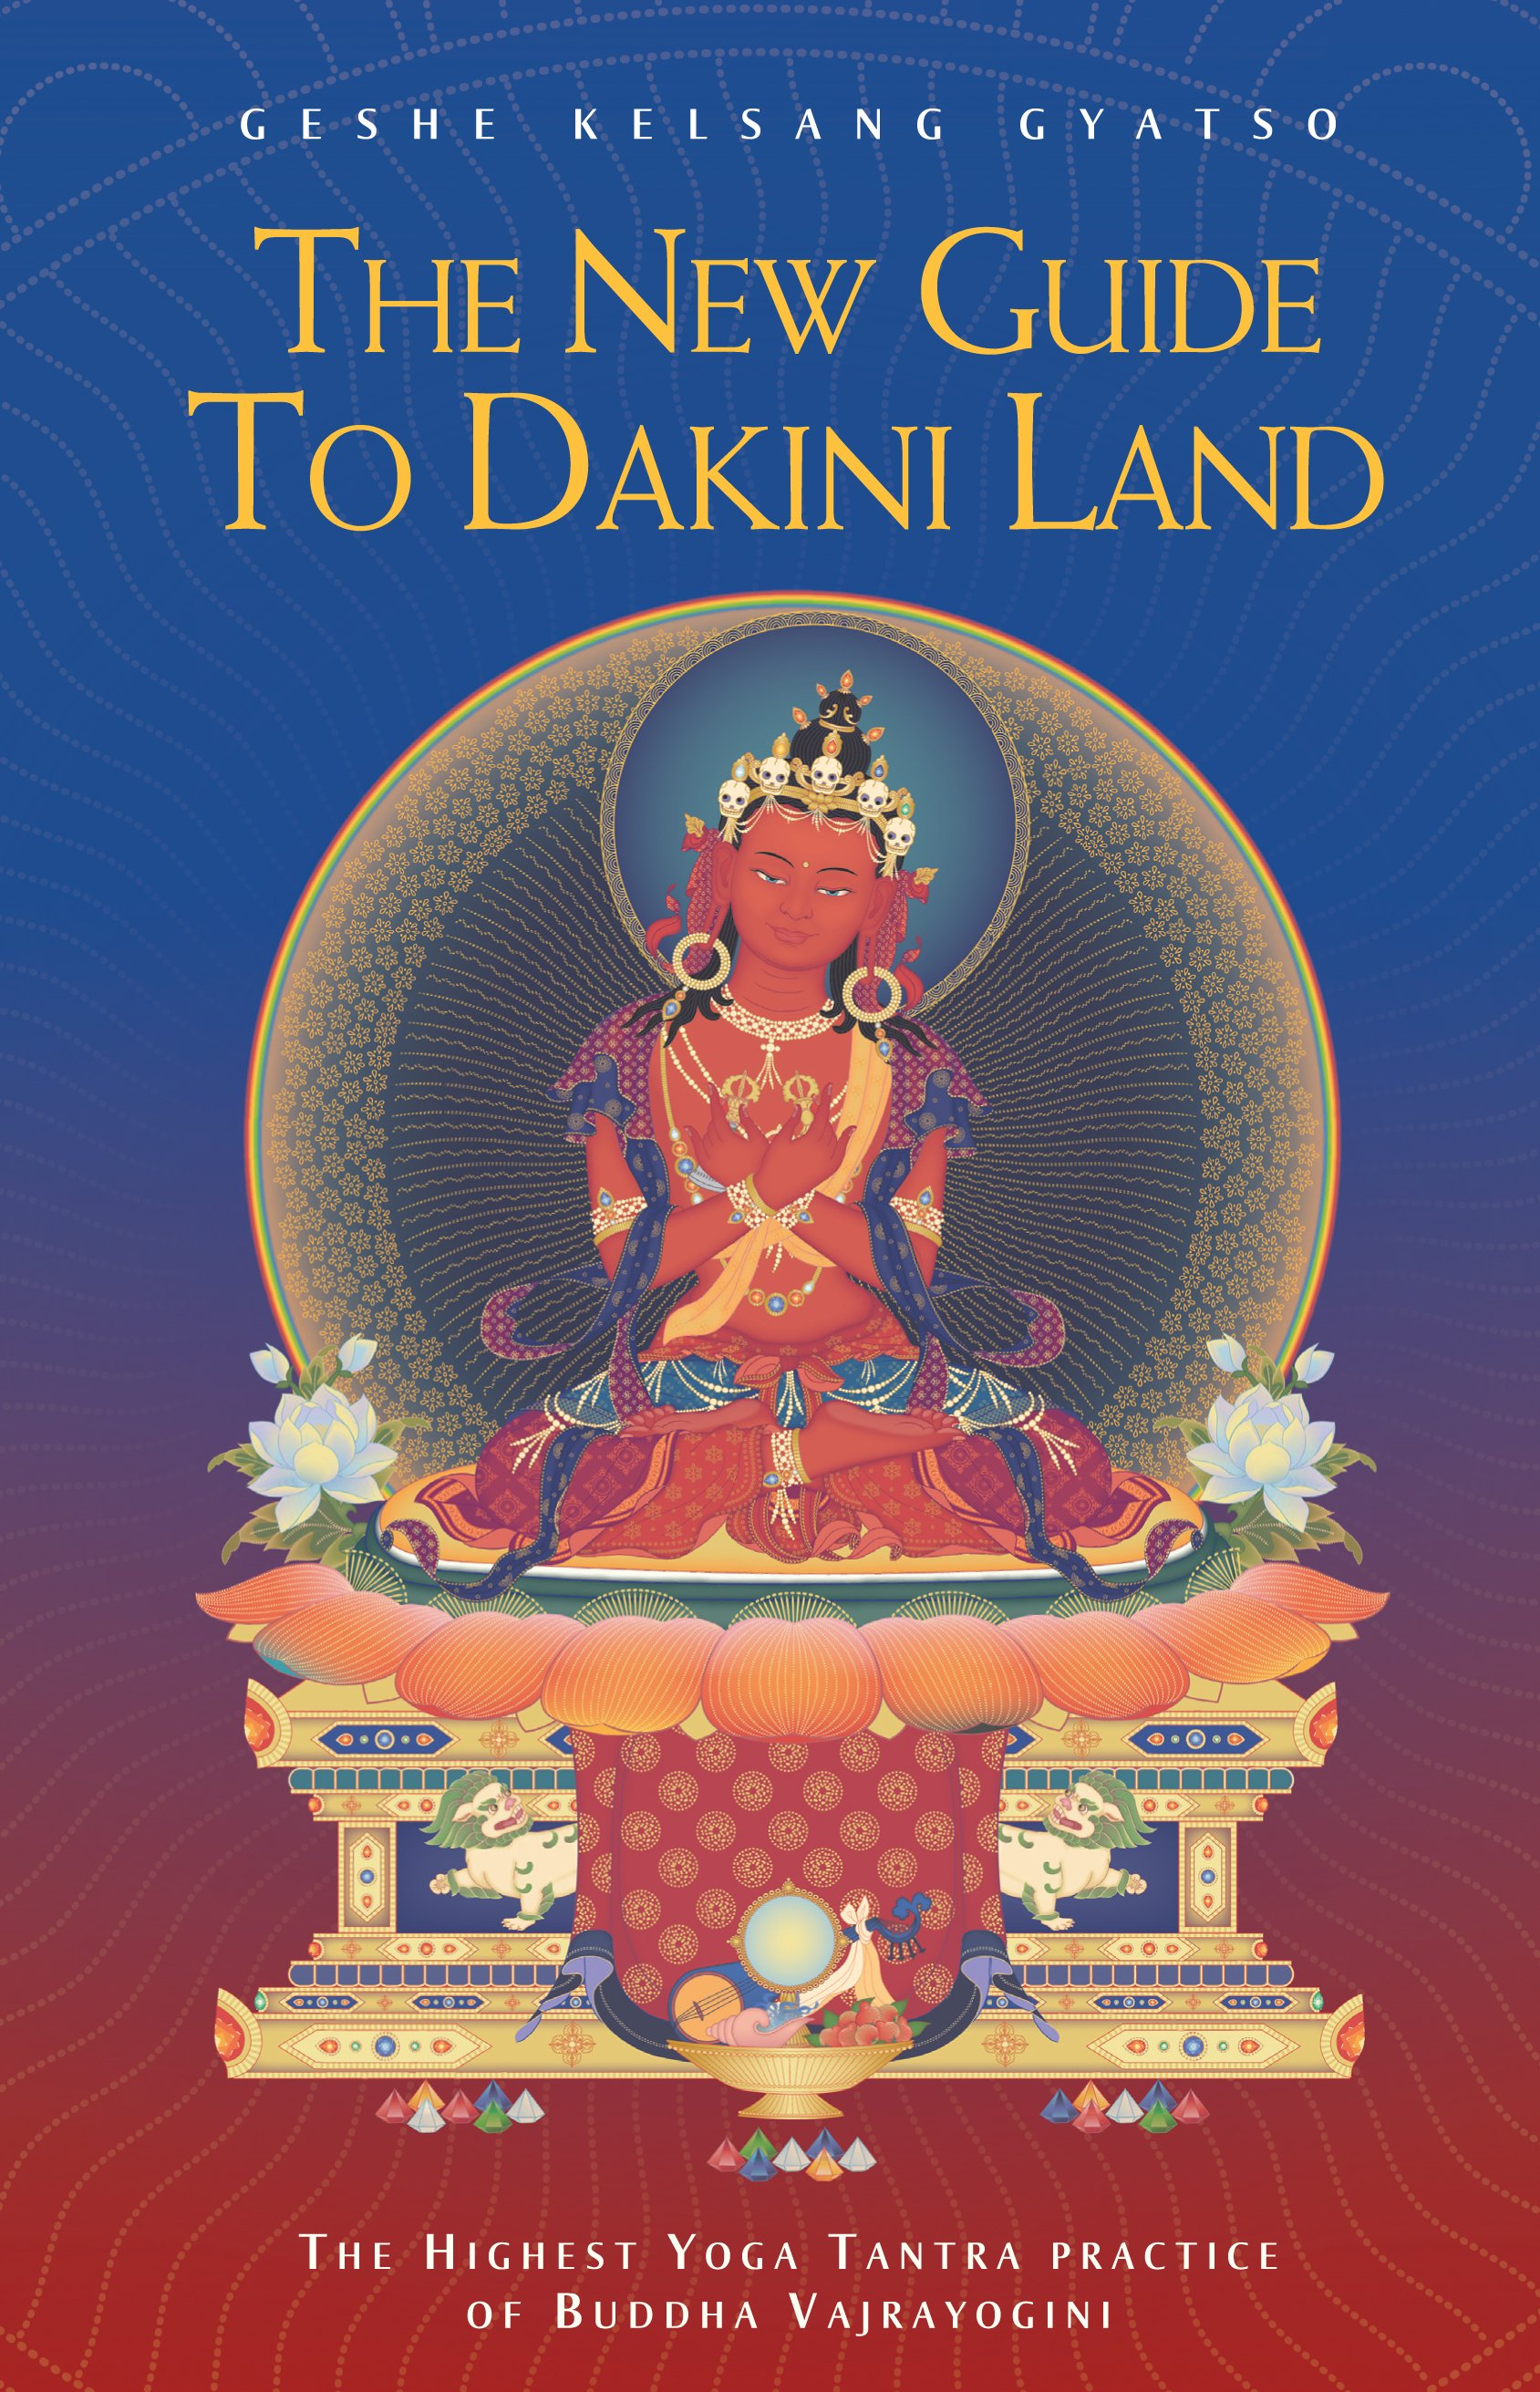 The New Guide to Dakini Land